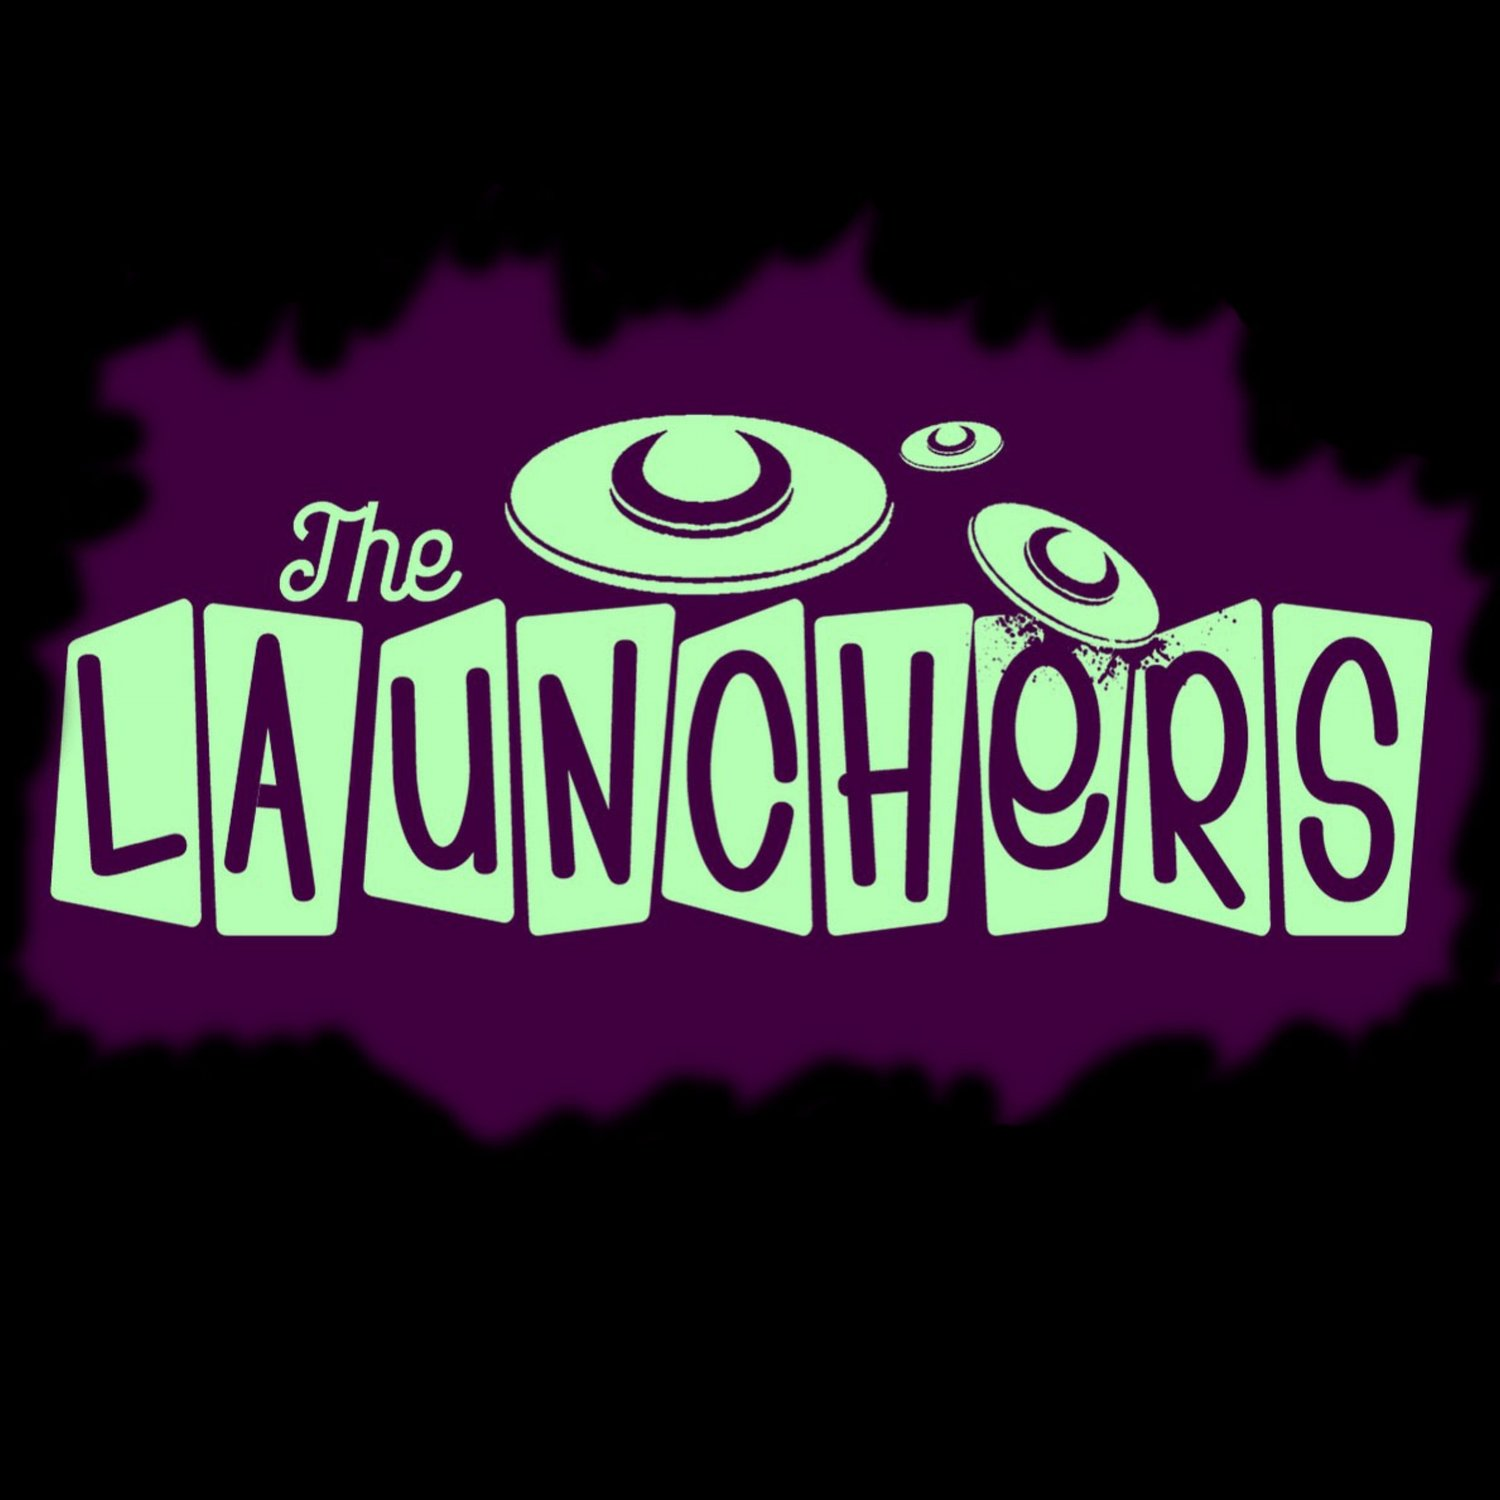 The Launchers